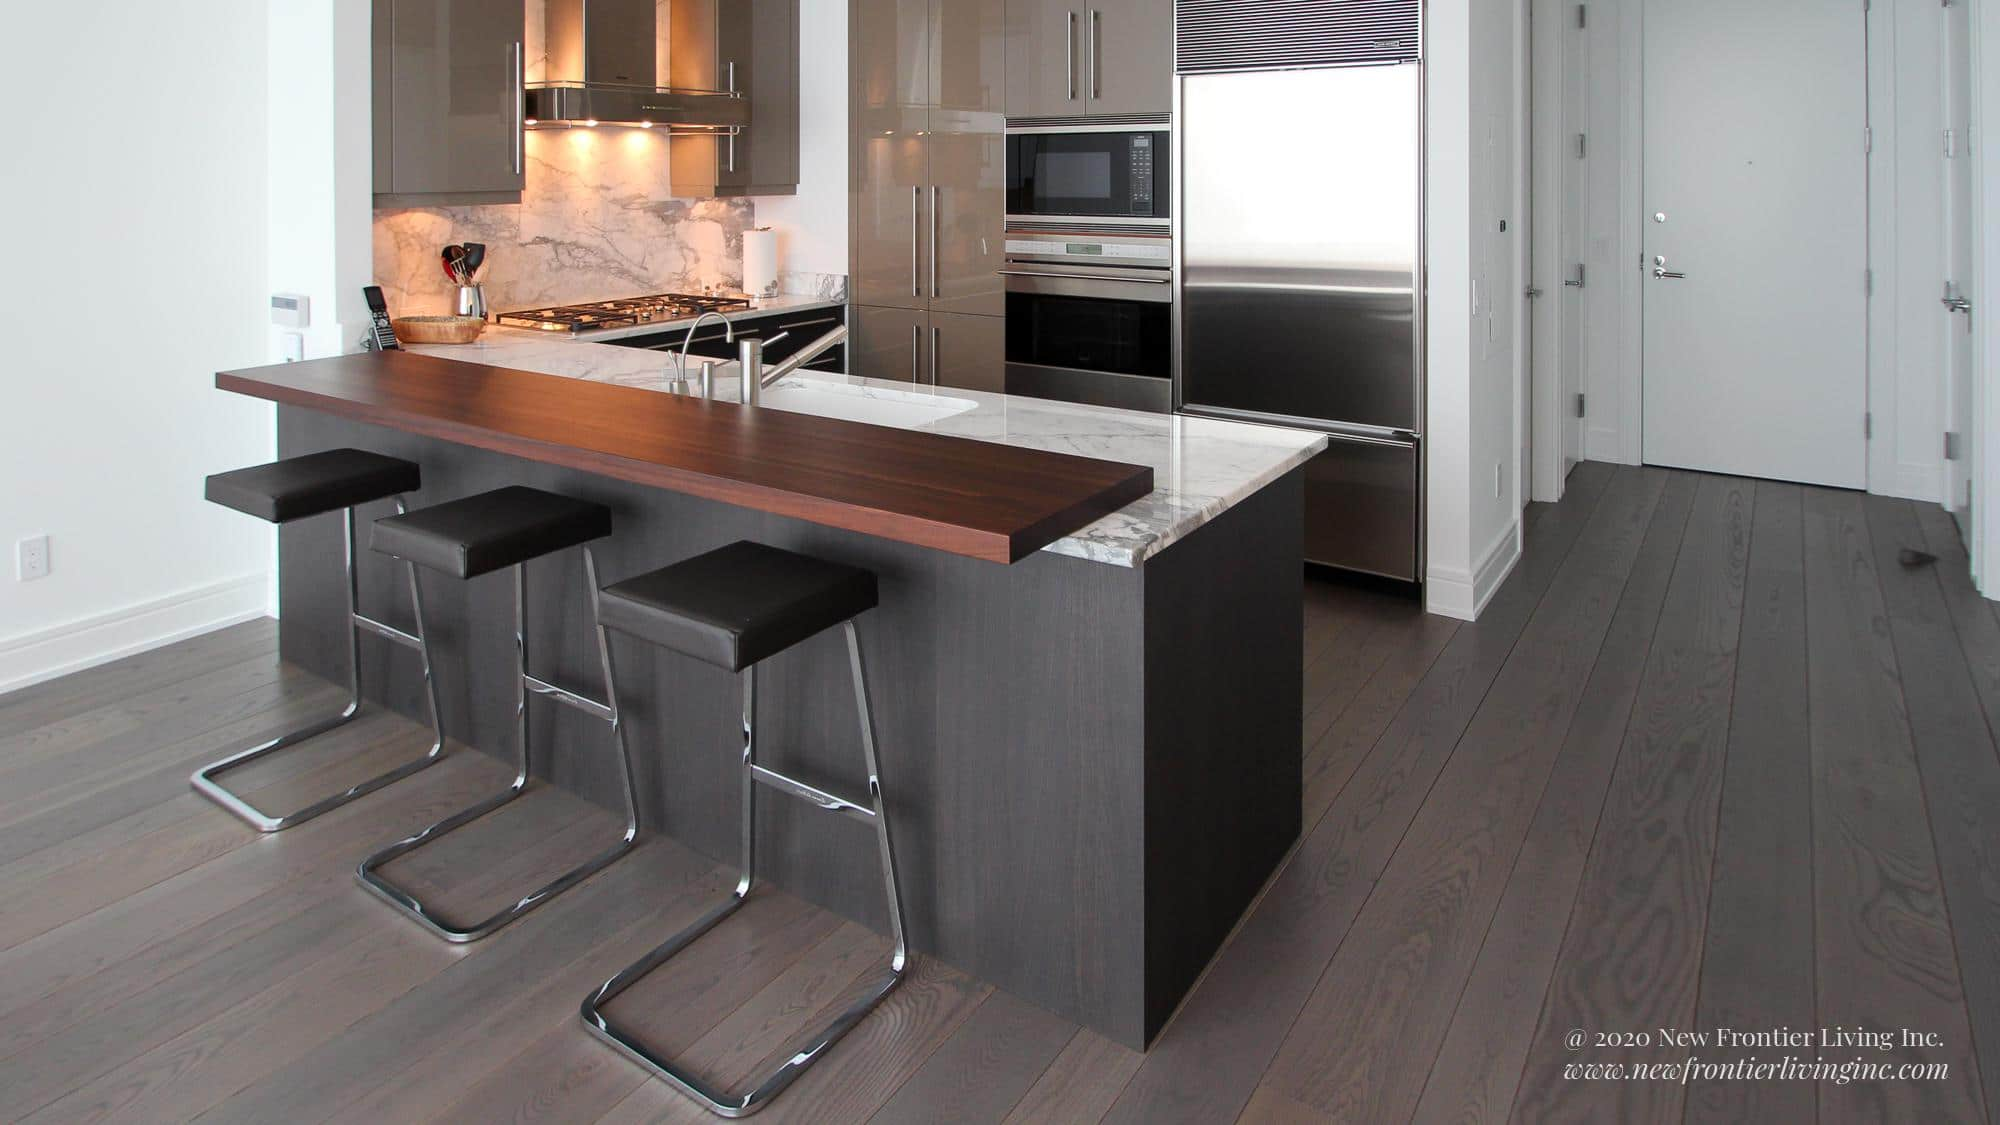 Dark gray kitchen with white granite countertop and brown ledge, long view of entire kitchen